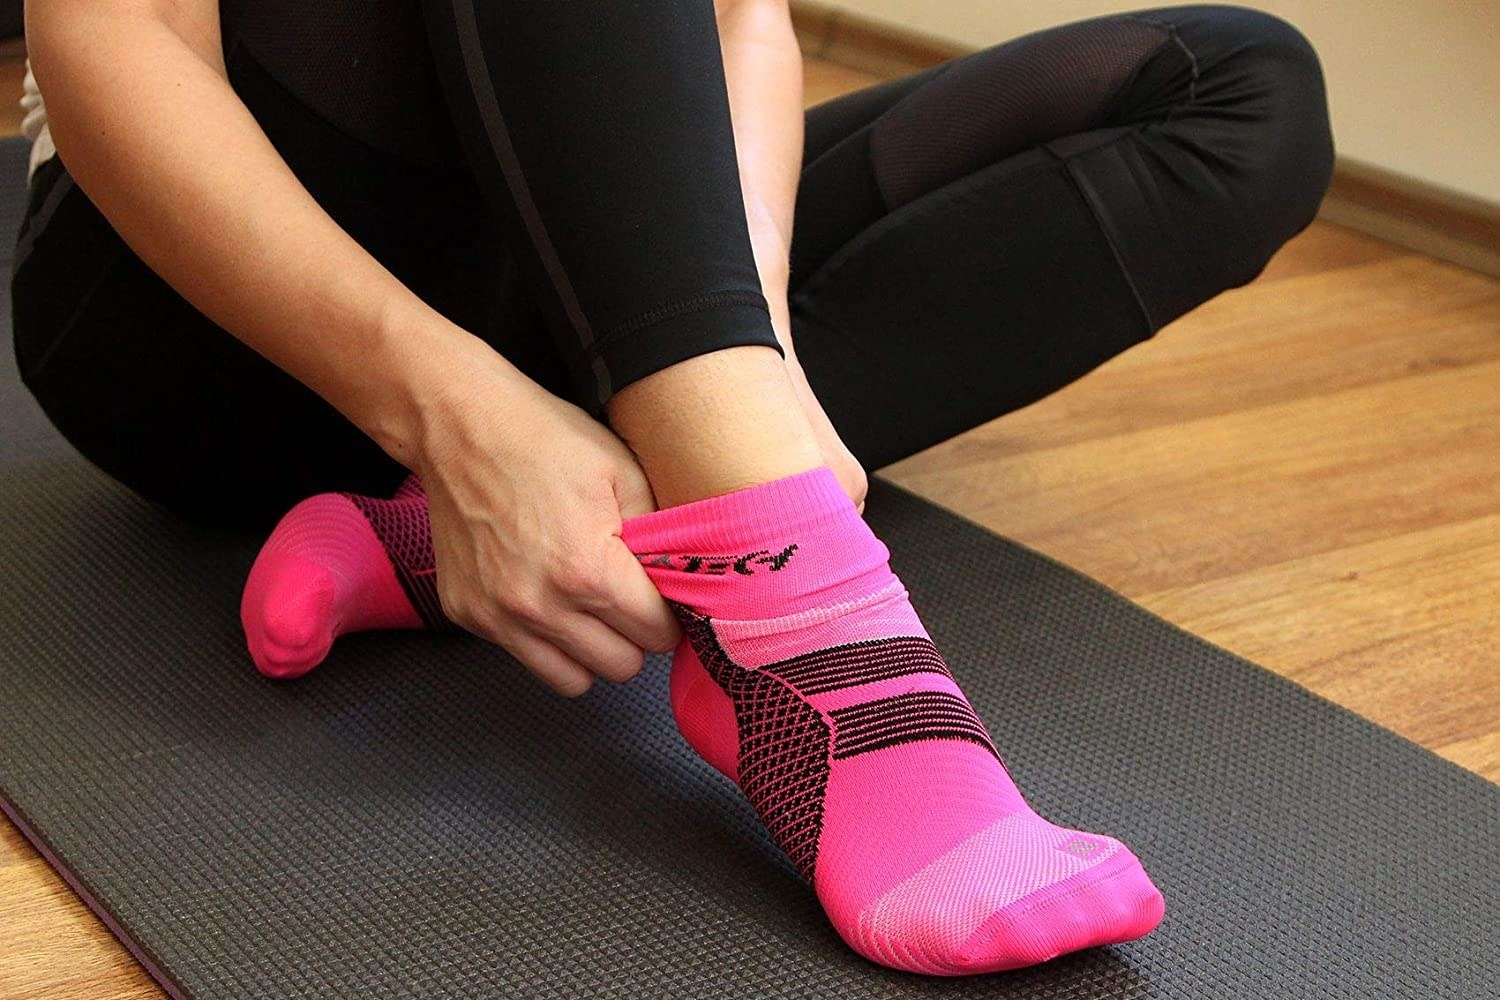 A person sitting on a yoga mat pulling on the compression socks